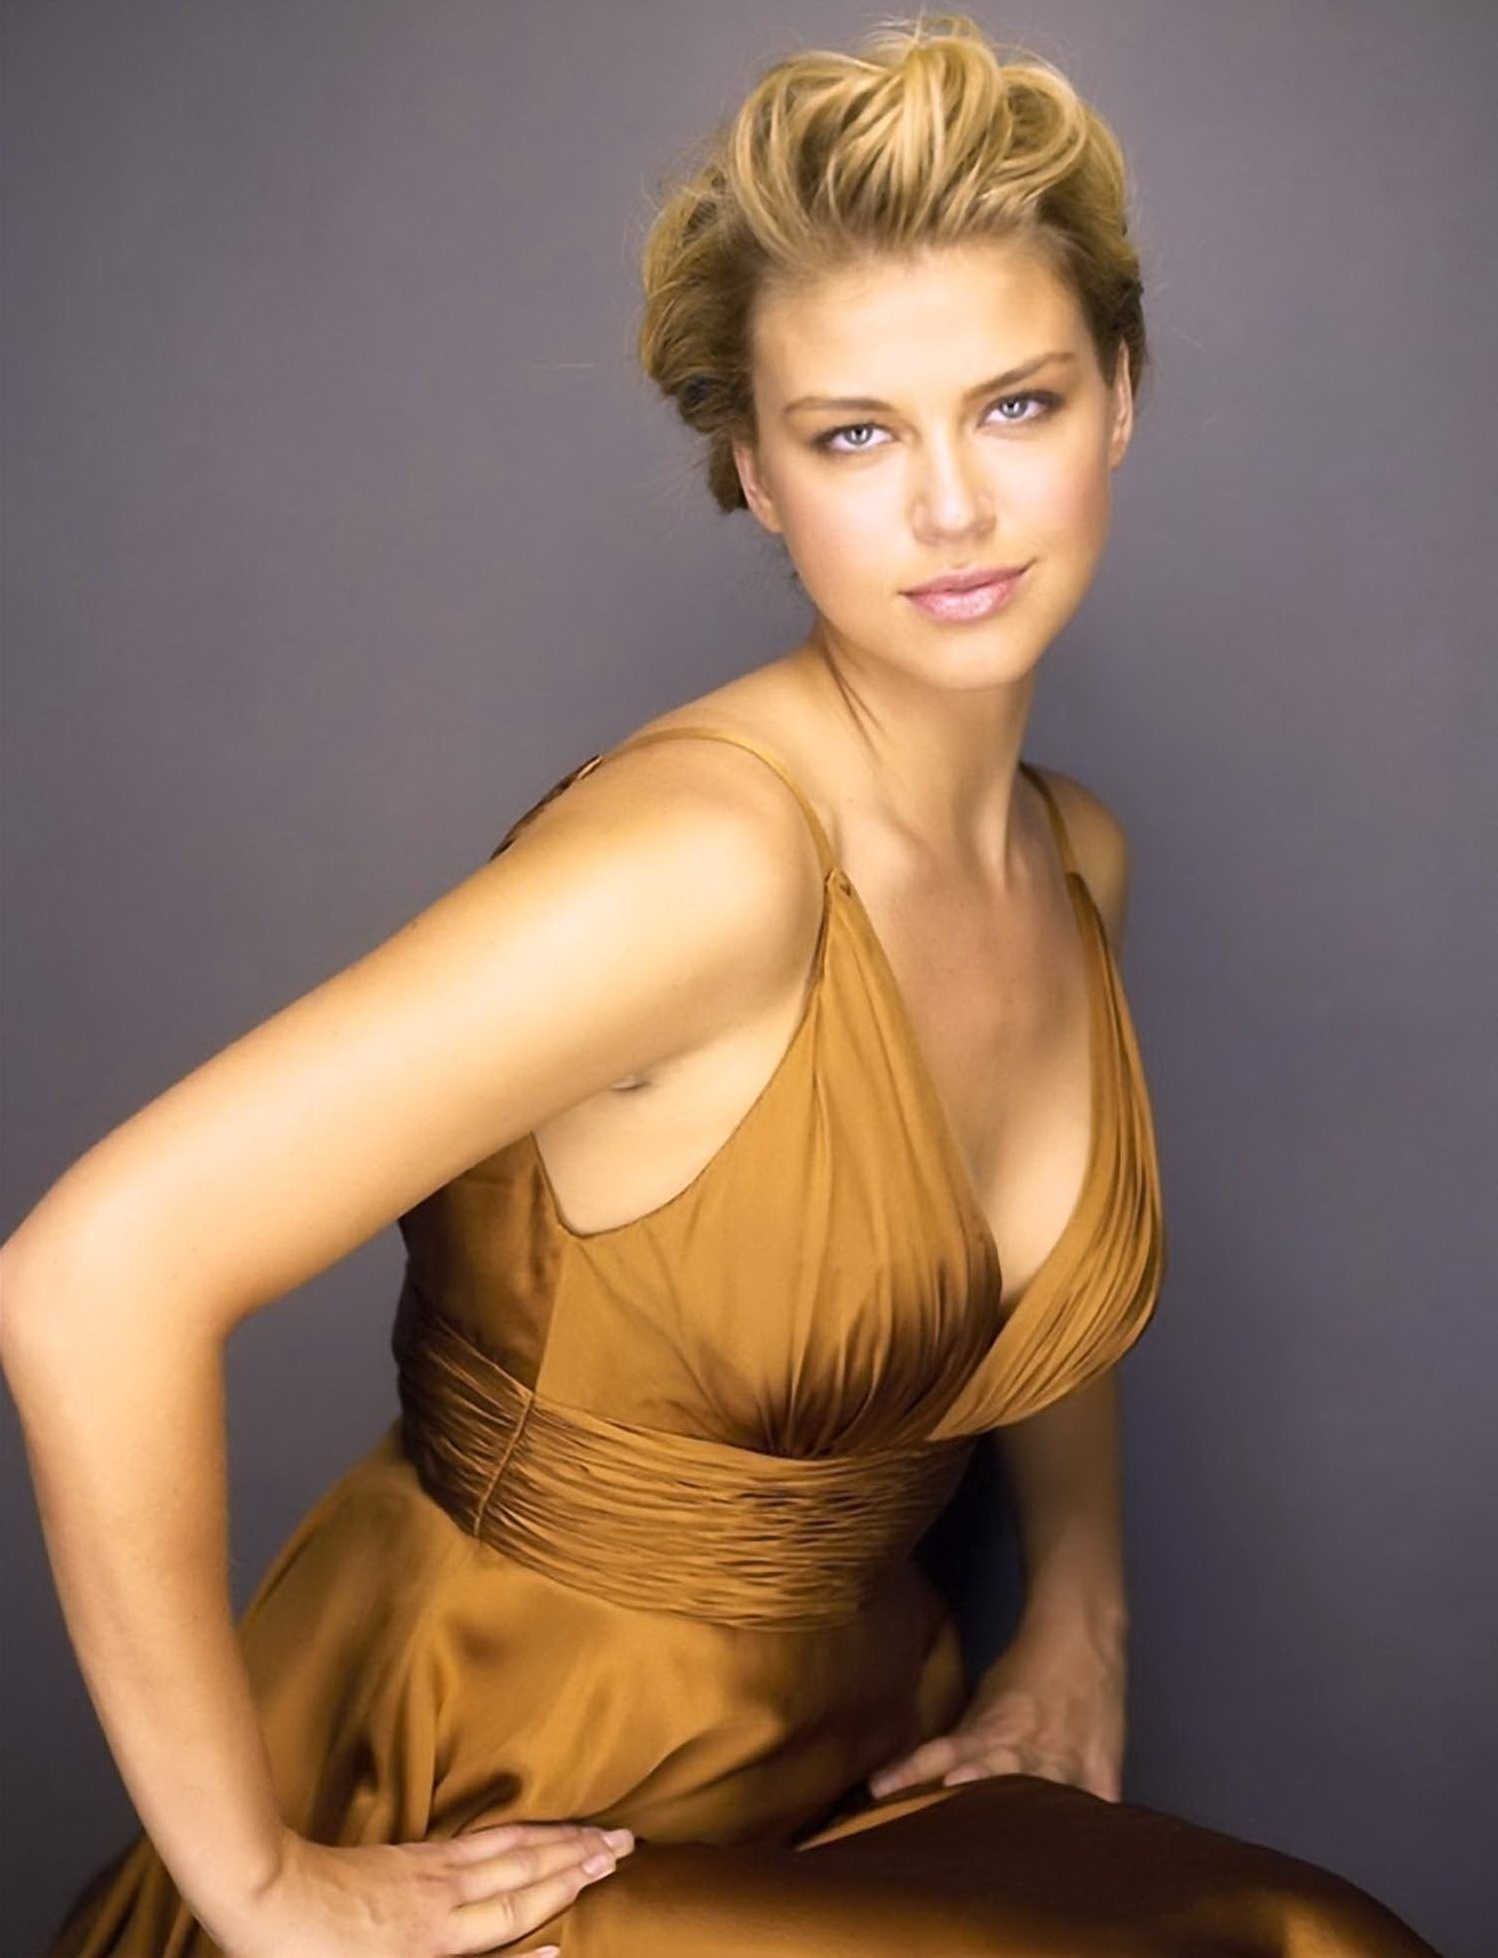 87654_Adrianne_Palicki_Jim_Wright_Shoot_nBs_004_122_429lo.jpg